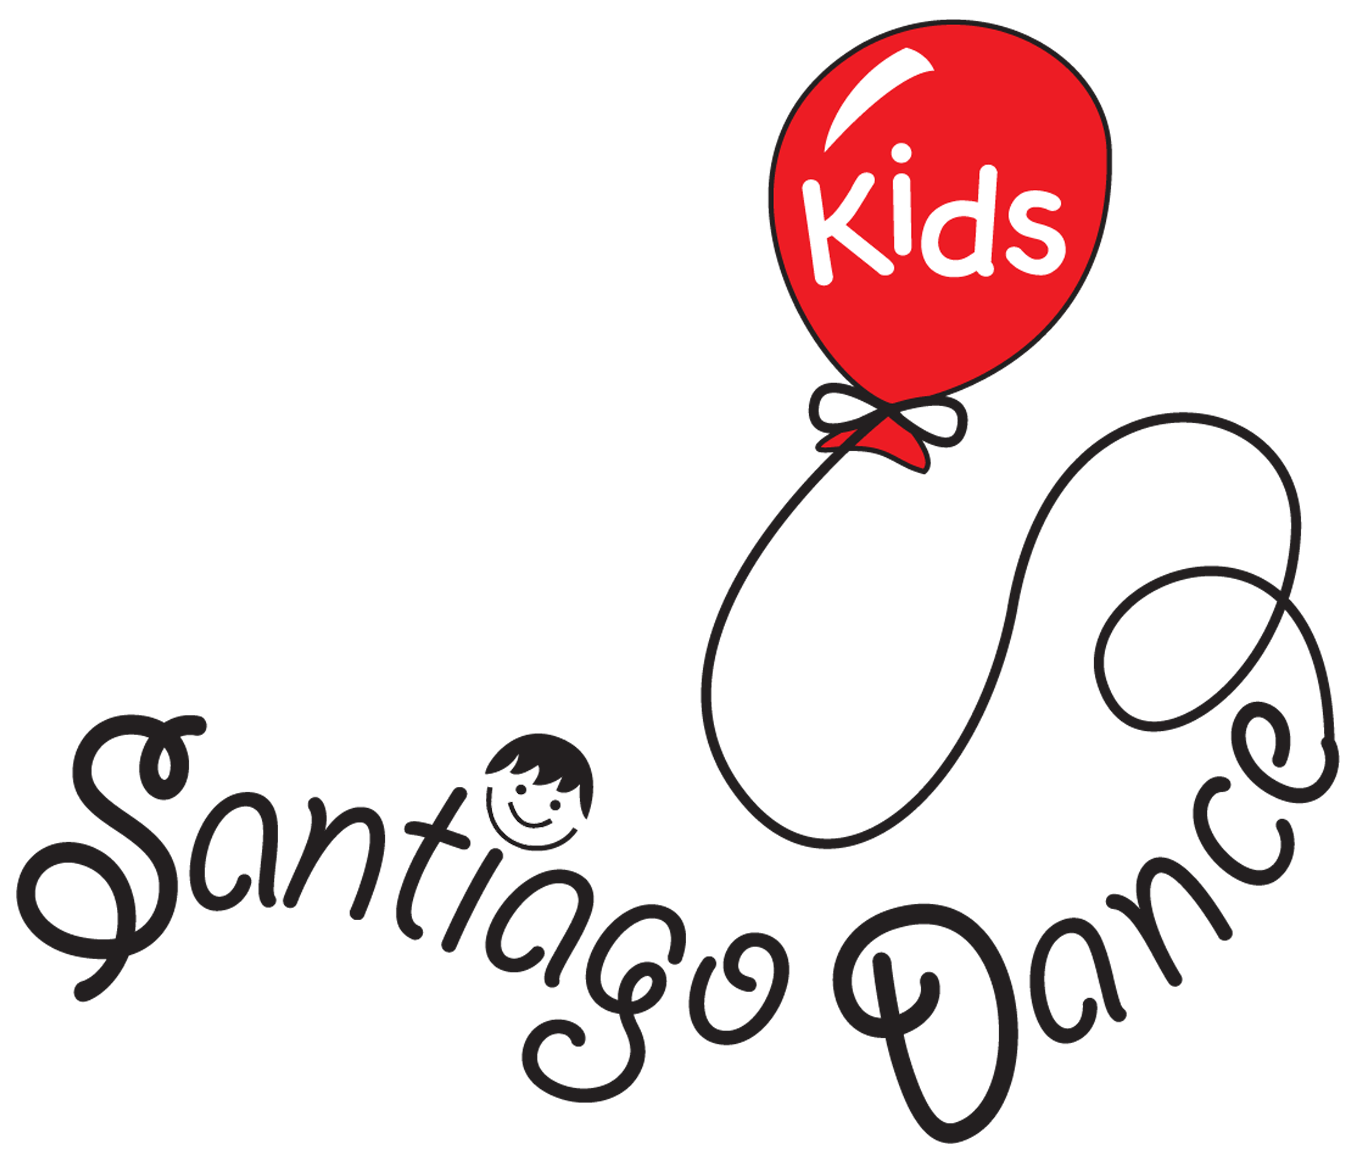 SantiagoDance Kids